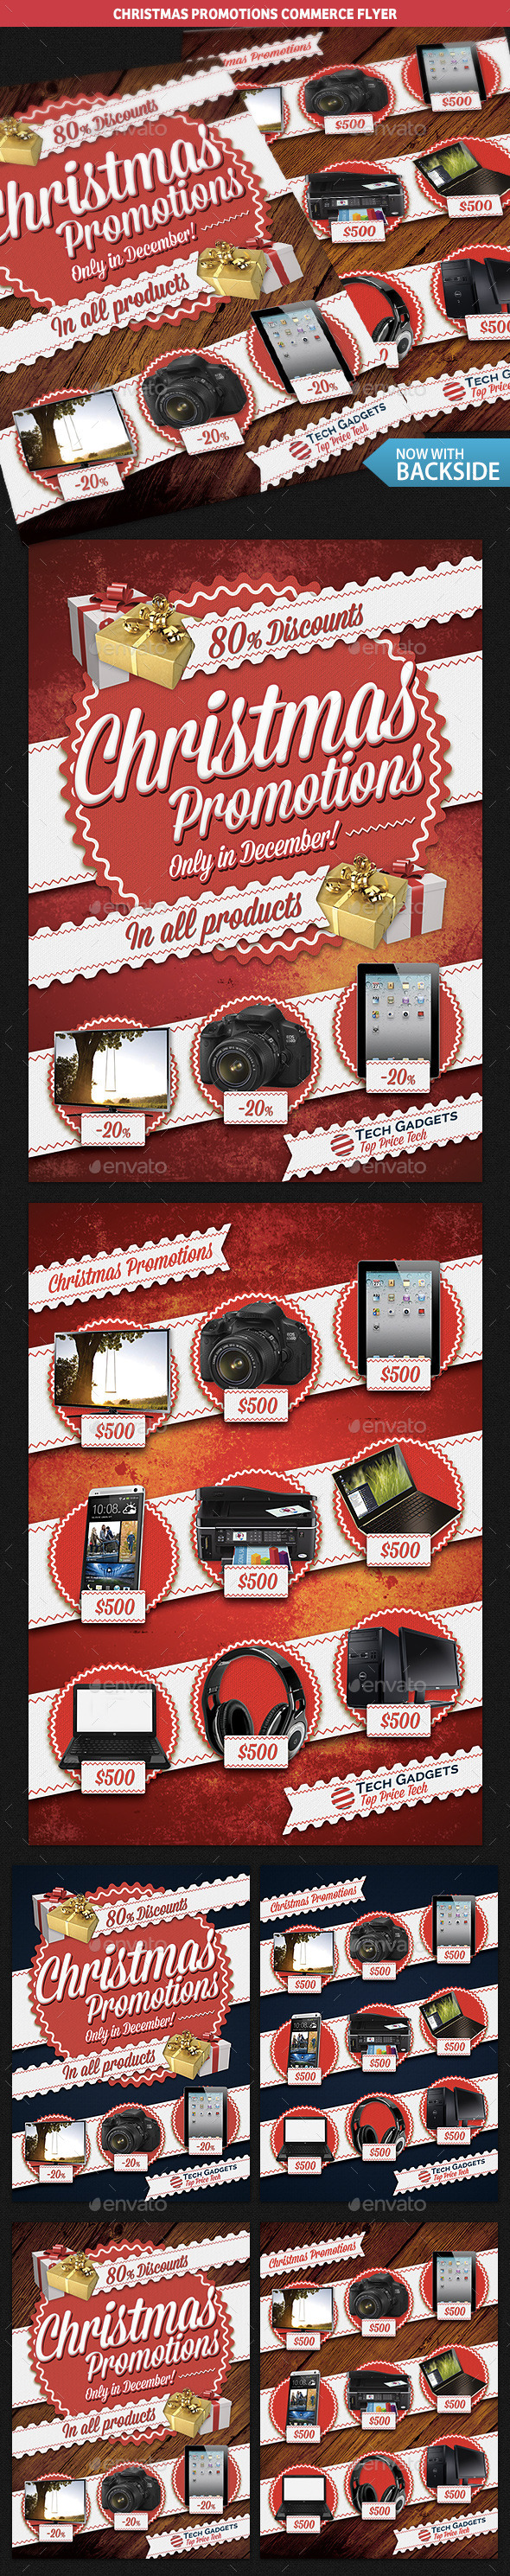 Christmas Promotions Commerce Flyer - Commerce Flyers